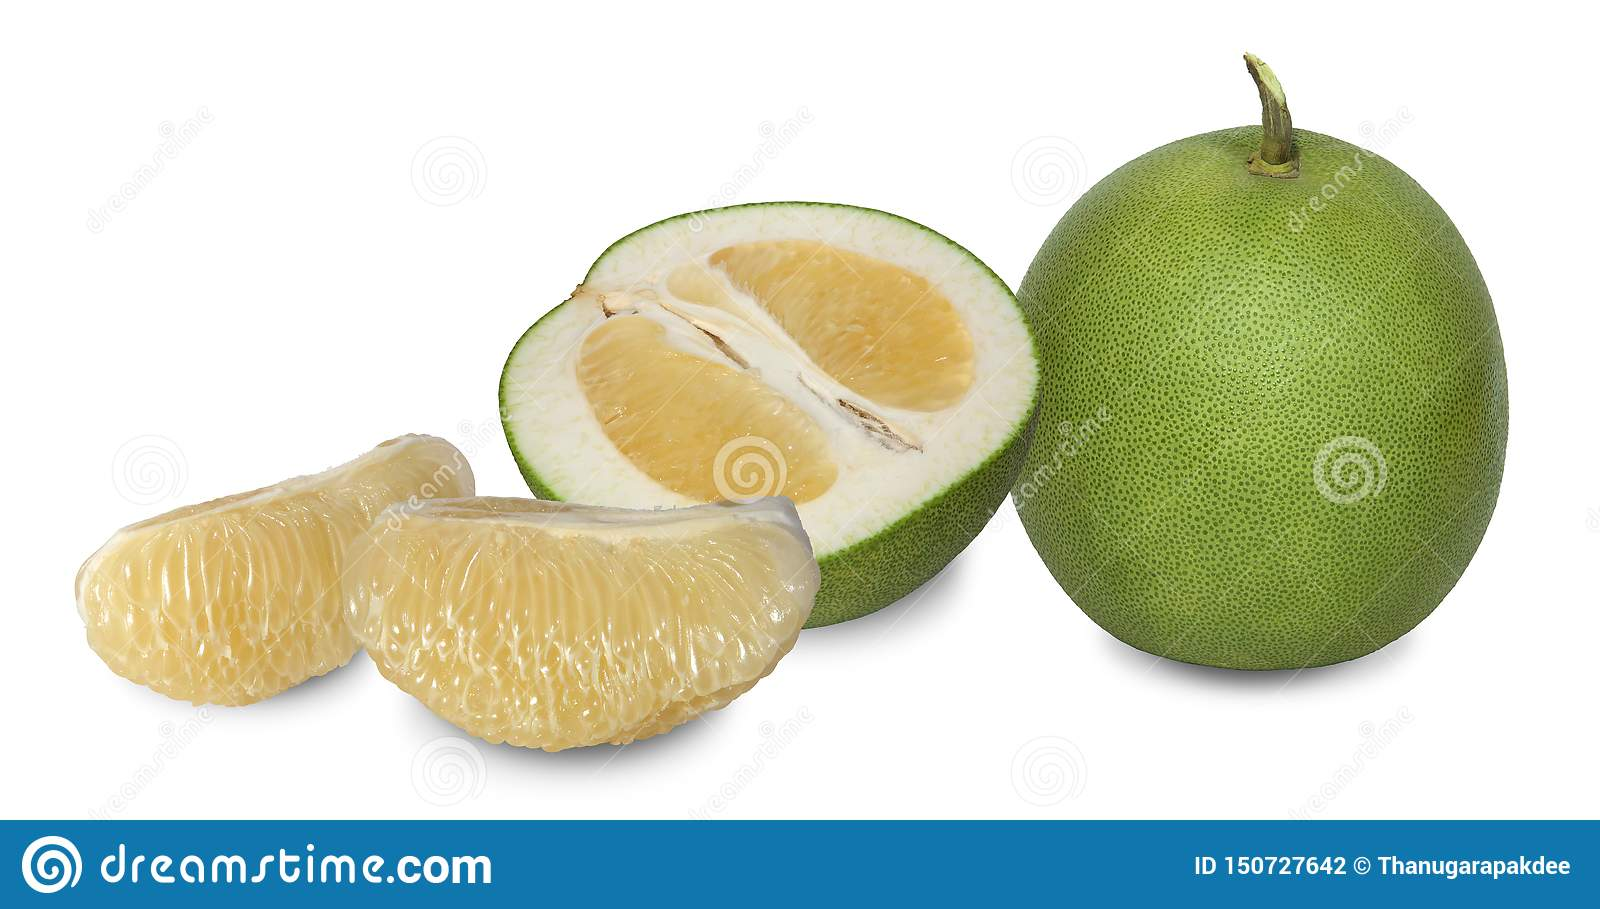 Pomelo is a plant in the same family as oranges with thick dimpled skin.